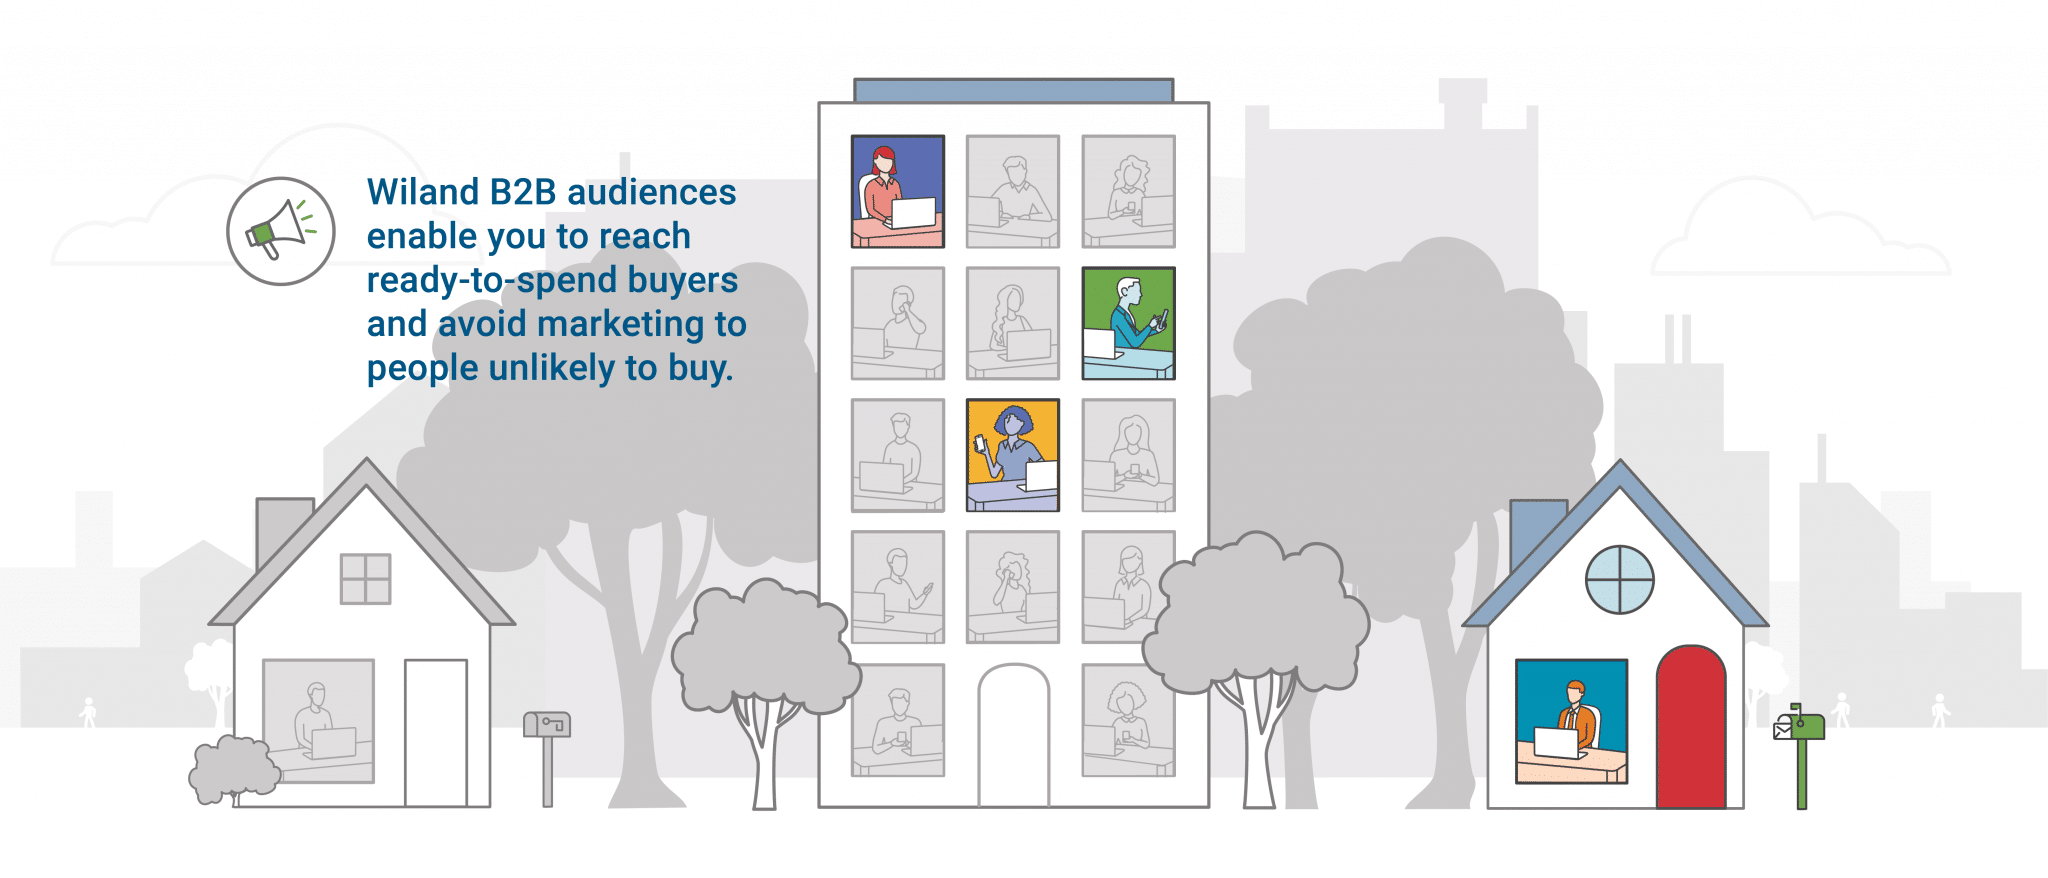 Wiland B2B audiences enable you to reach ready-to-spend buyers and avoid marketing to people unlikely to buy.